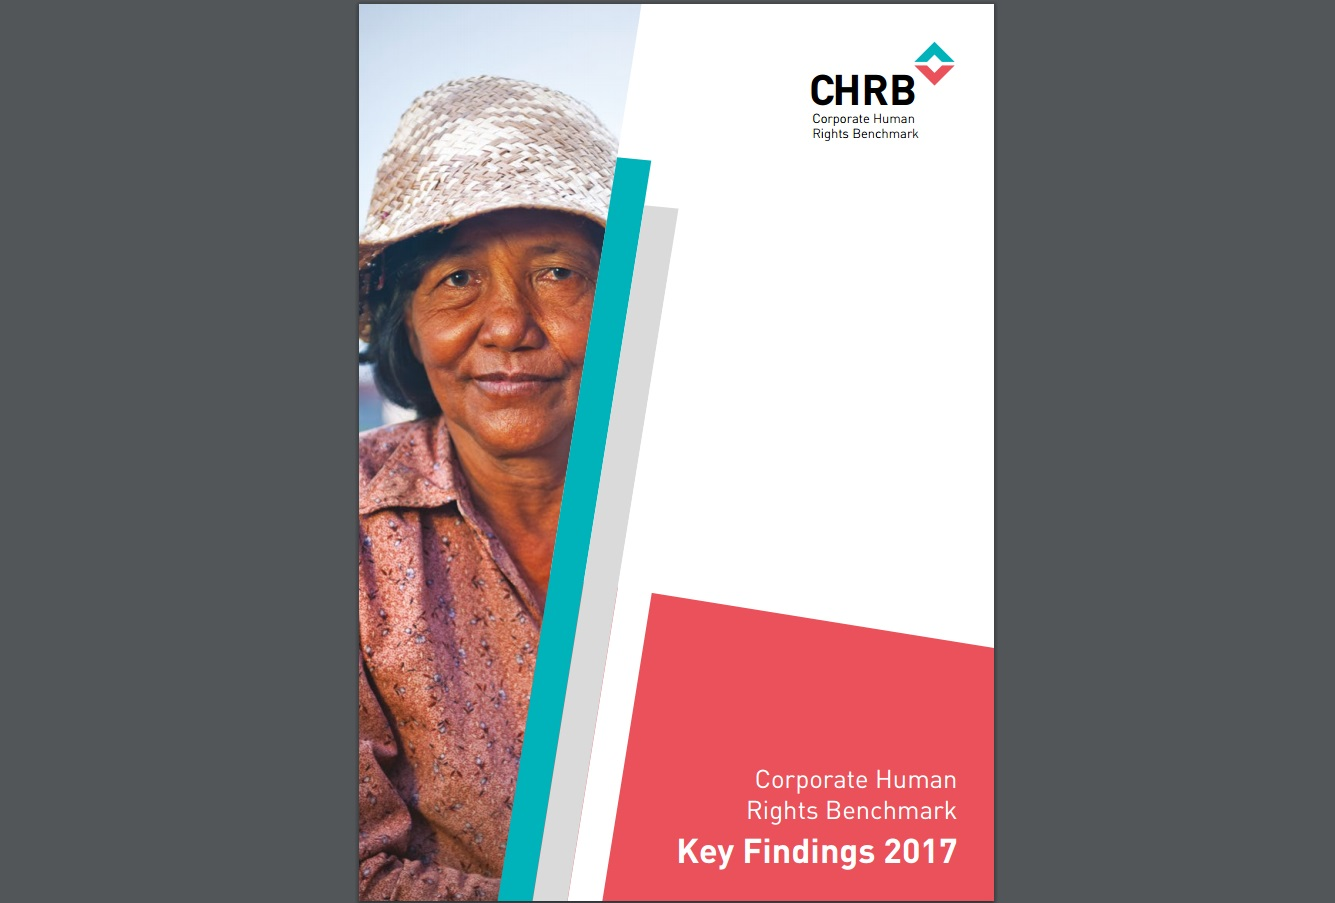 Corporate Human Rights Benchmark: Key Findings 2017 - edie.net